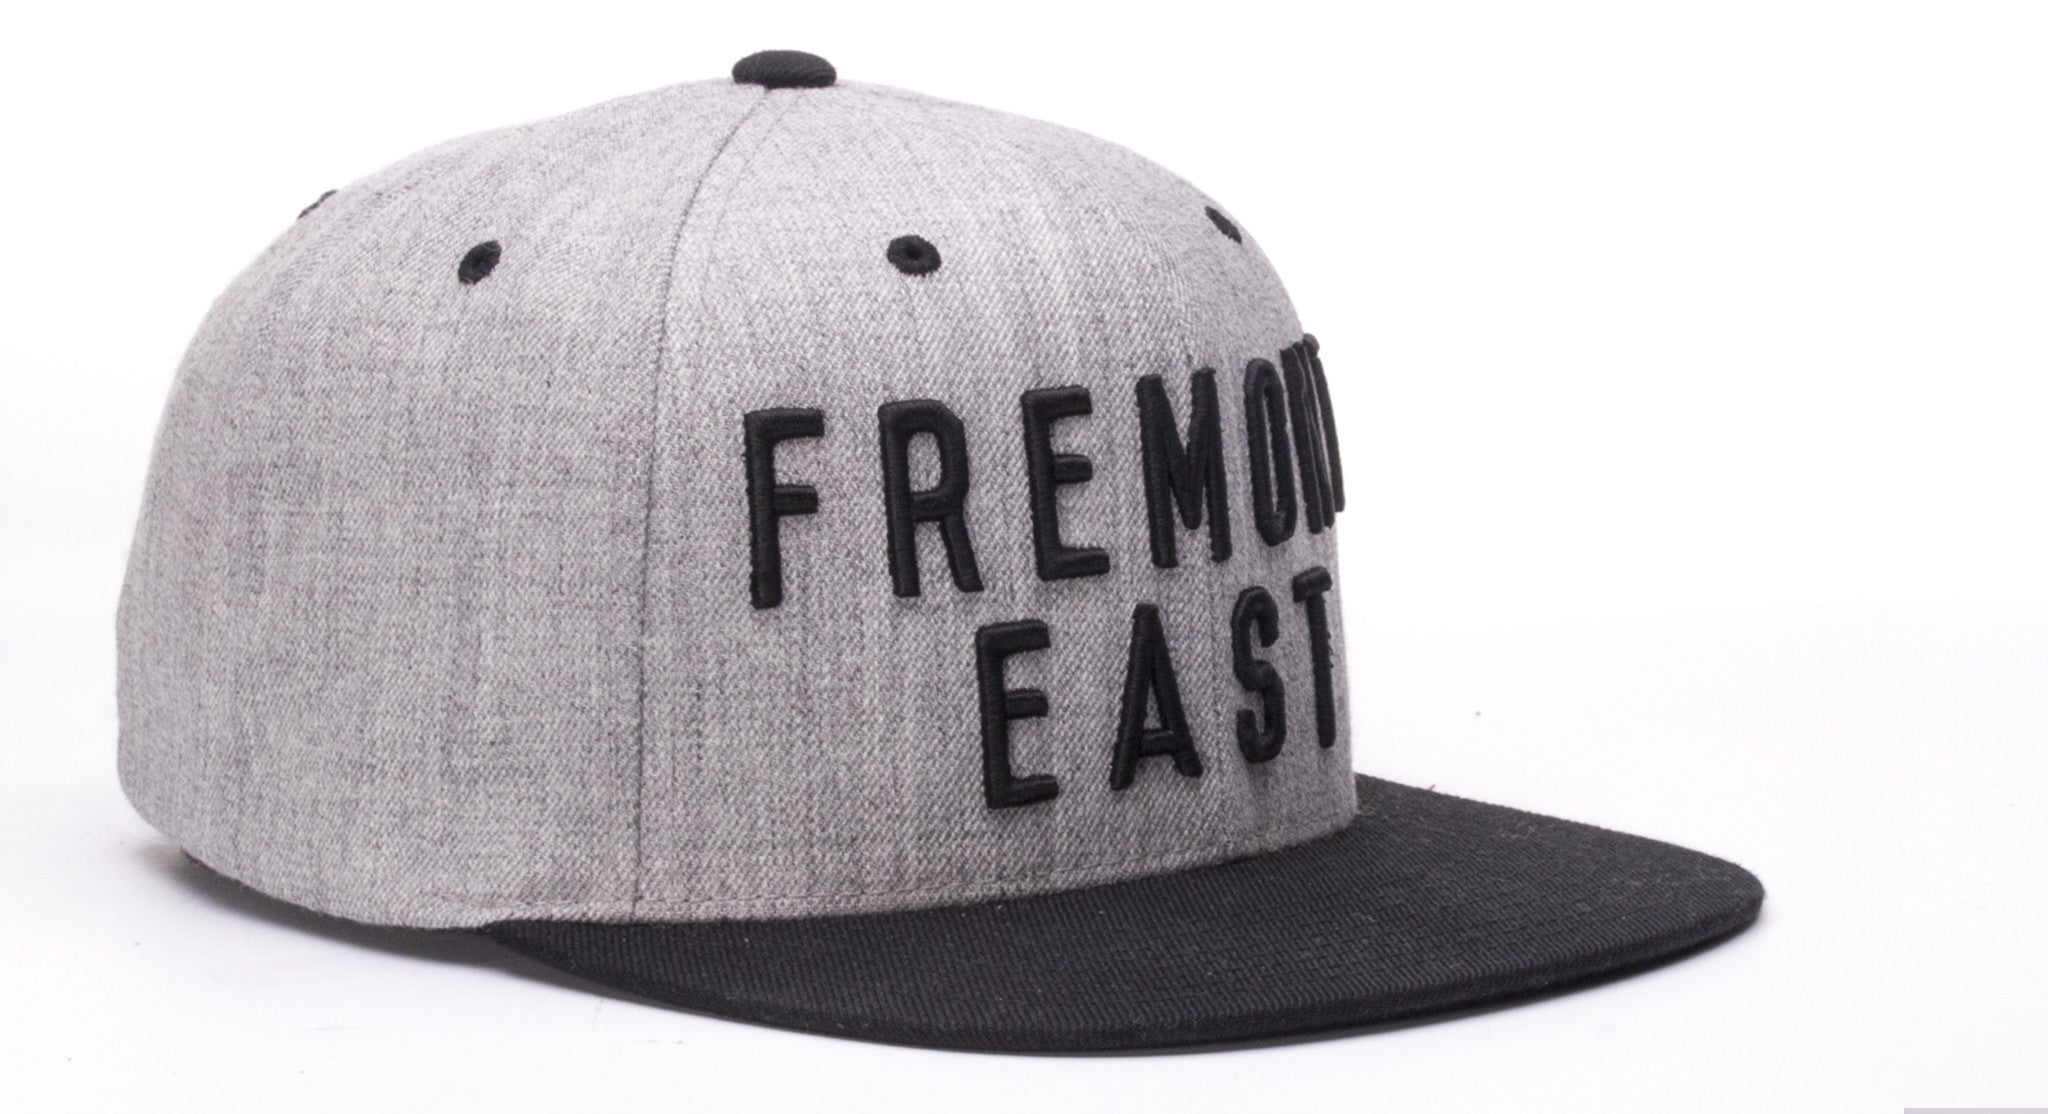 FREMONT EAST STAPLE // HEATHER GREY & BLACK